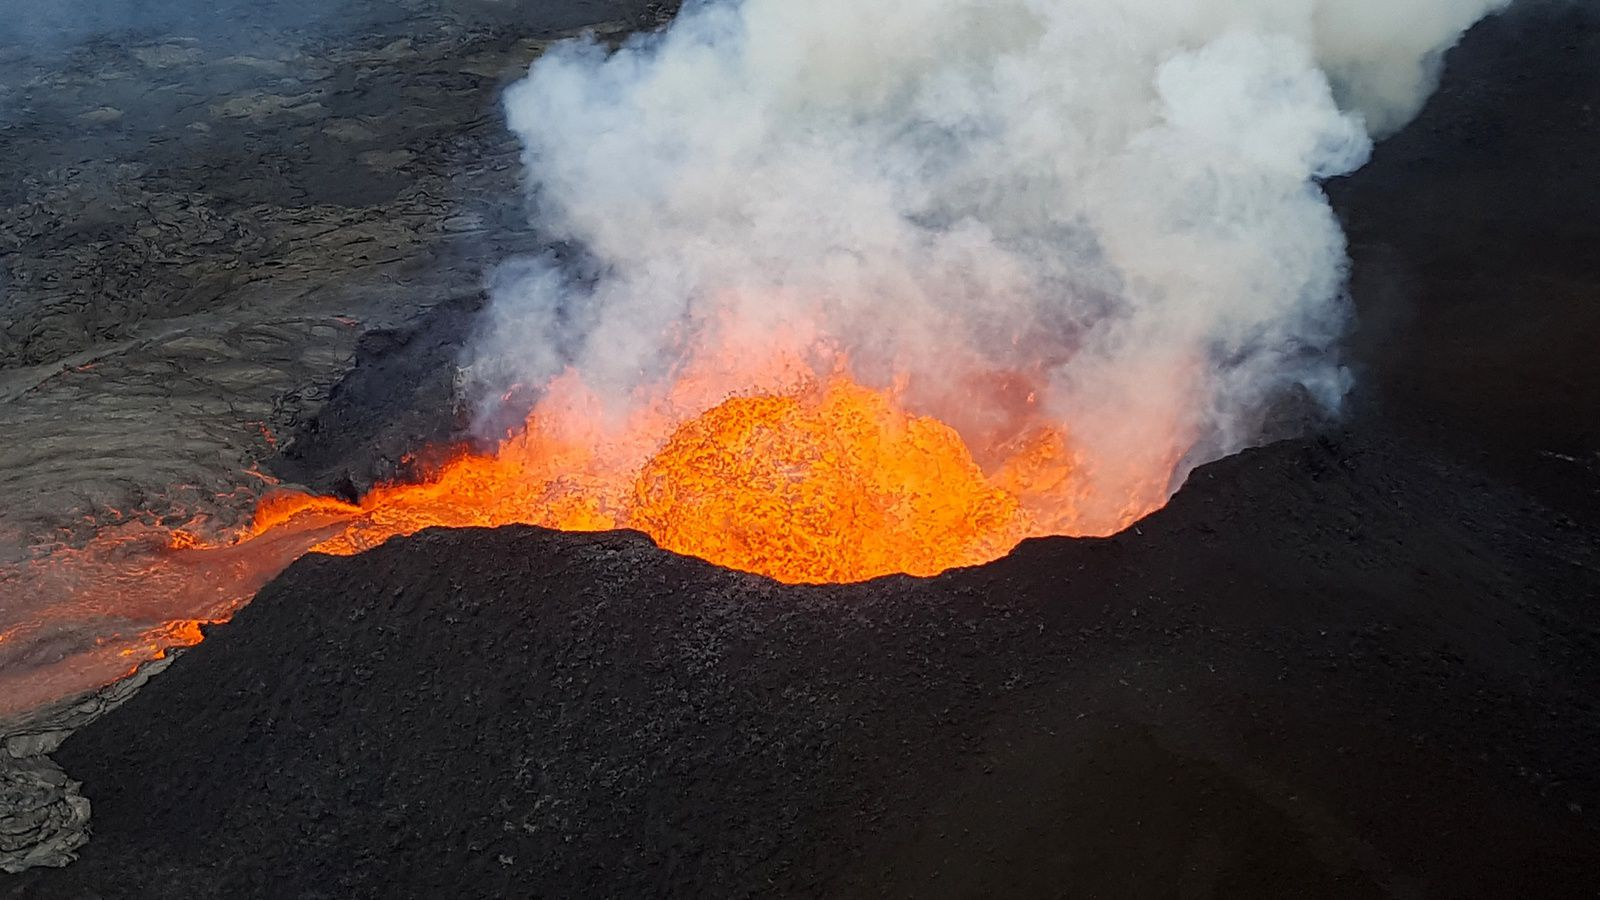 Kilauea East rift zone - lava fountains and cone on fissure 8 - photo HVO-USGS